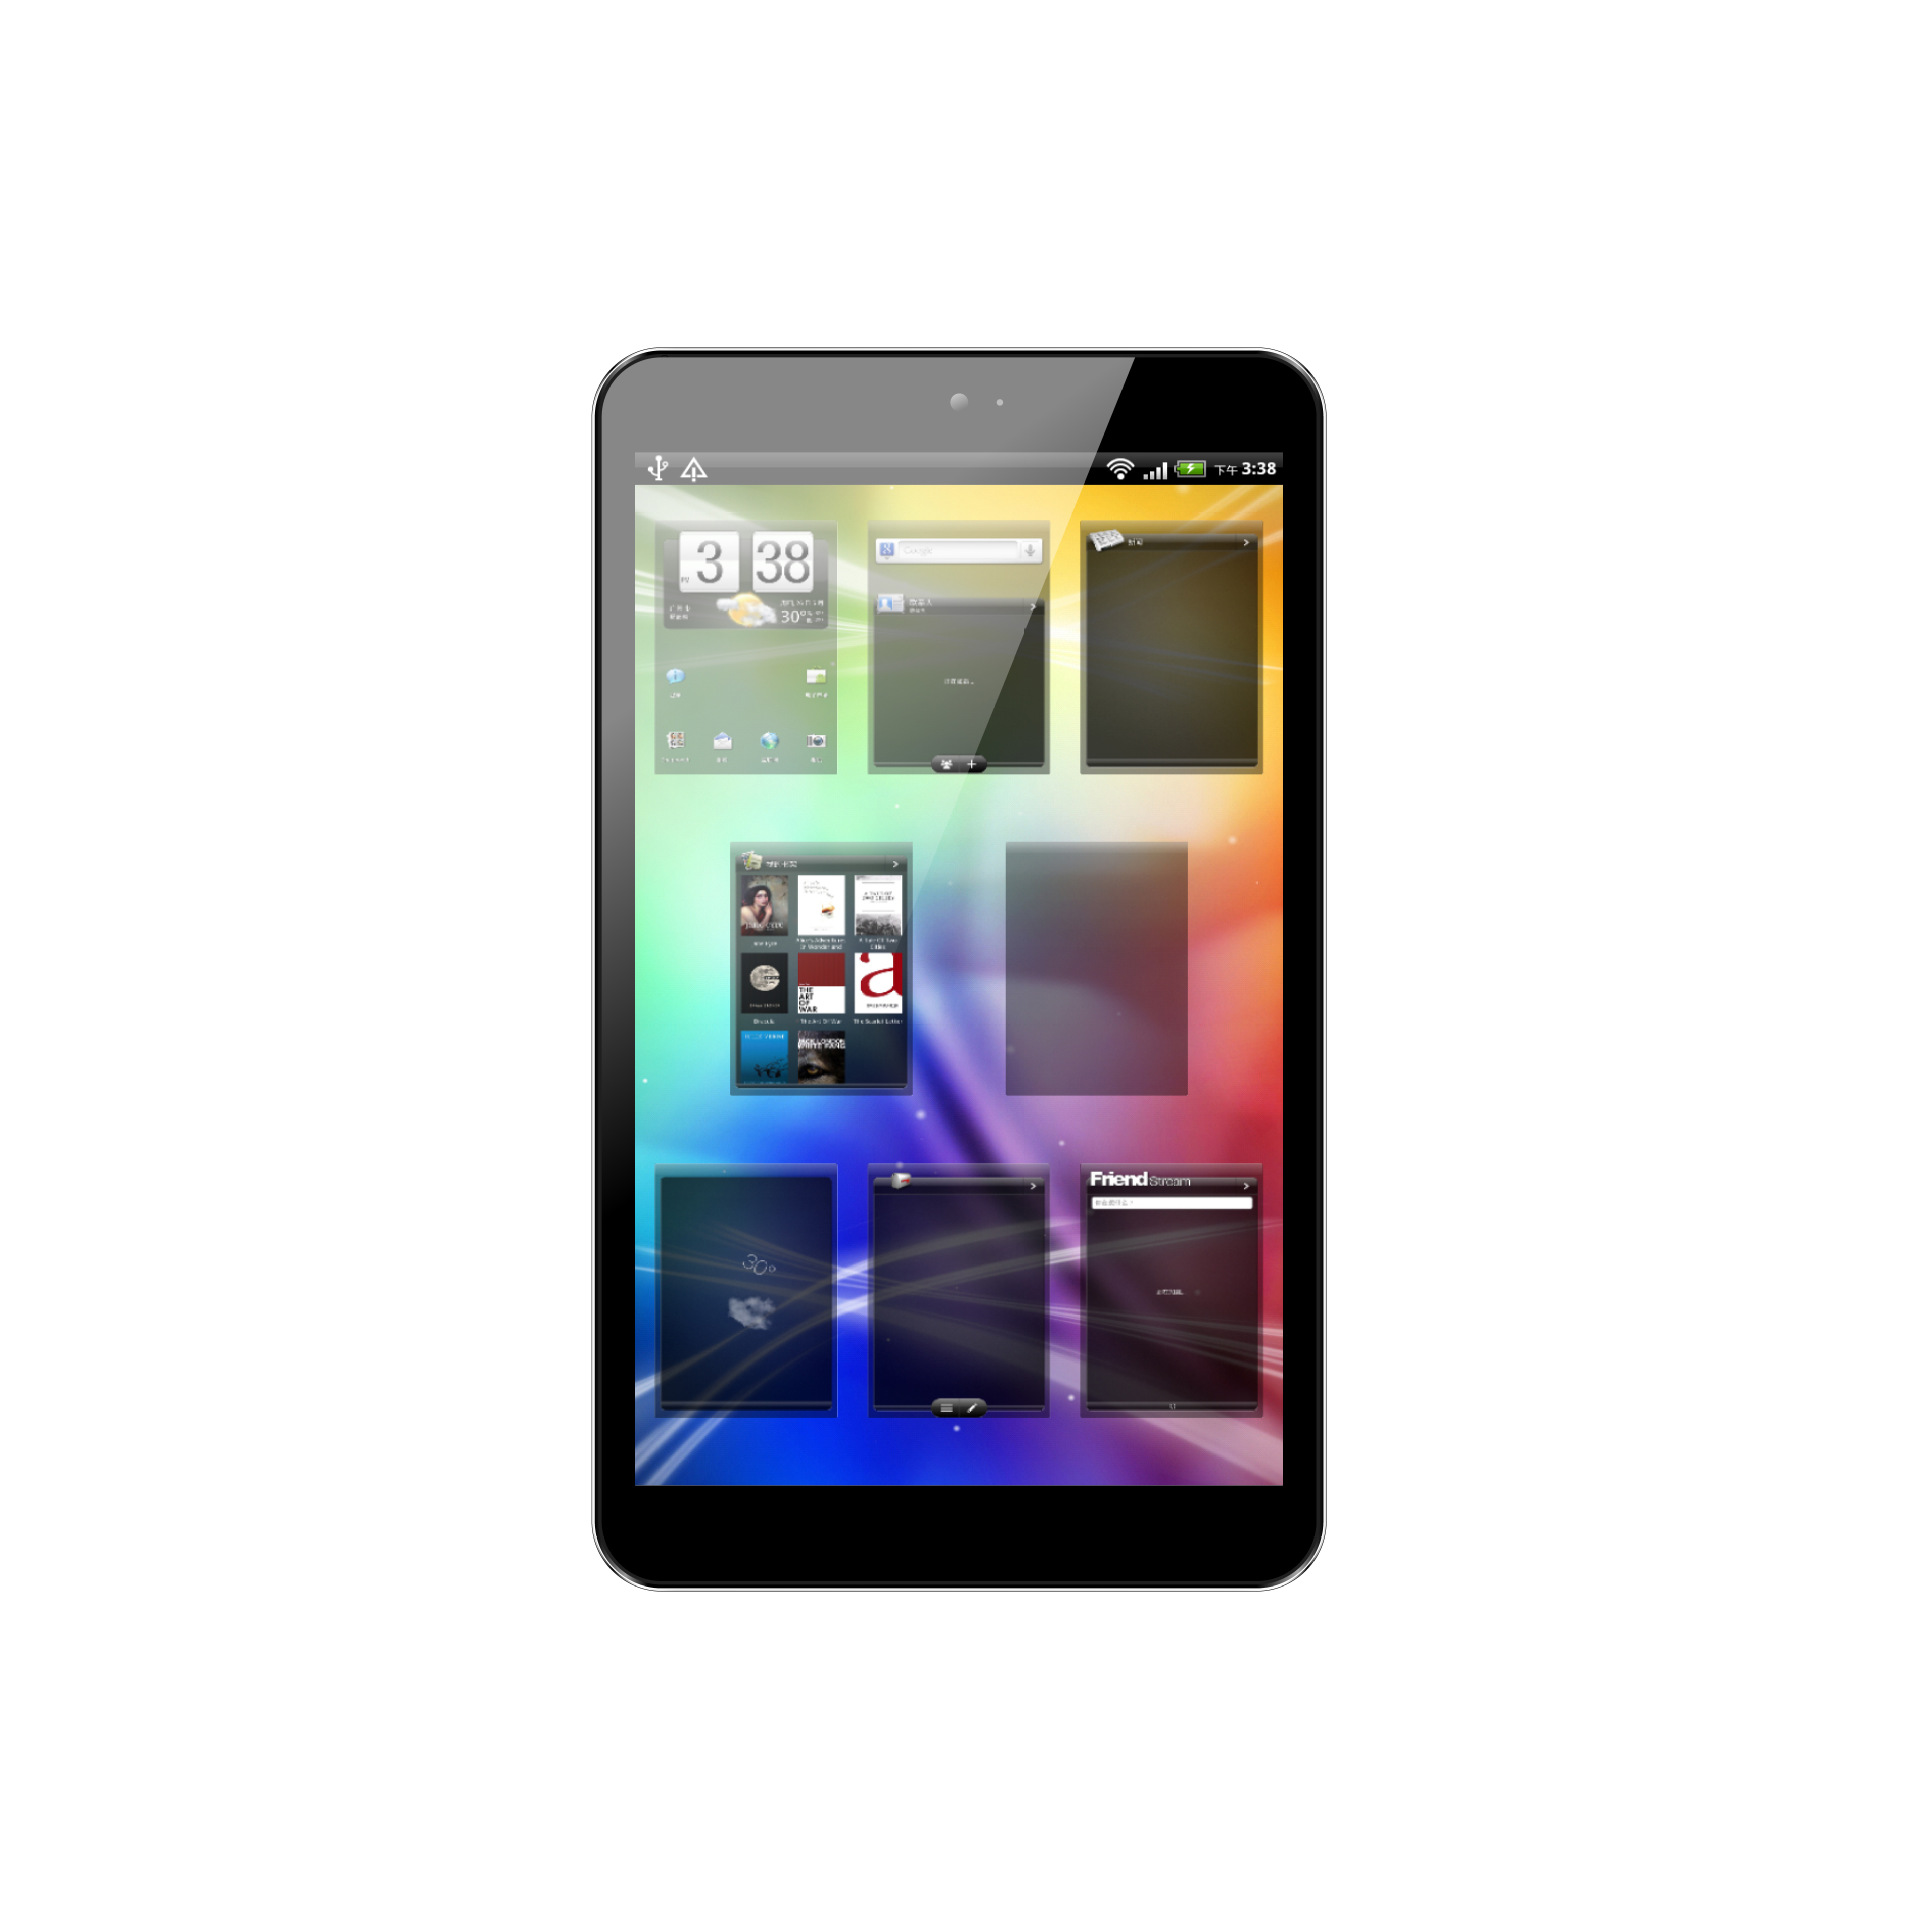 S8 RK3368 <strong>tablet</strong> 8 inch ,New Arrival 8&quot; 1280*800 IPS Screen MTK8735 Android 6.0 <strong>Tablet</strong> <strong>PC</strong> LTE 4G ,8 inch ip67 rug <strong>tablet</strong> <strong>pc</strong>